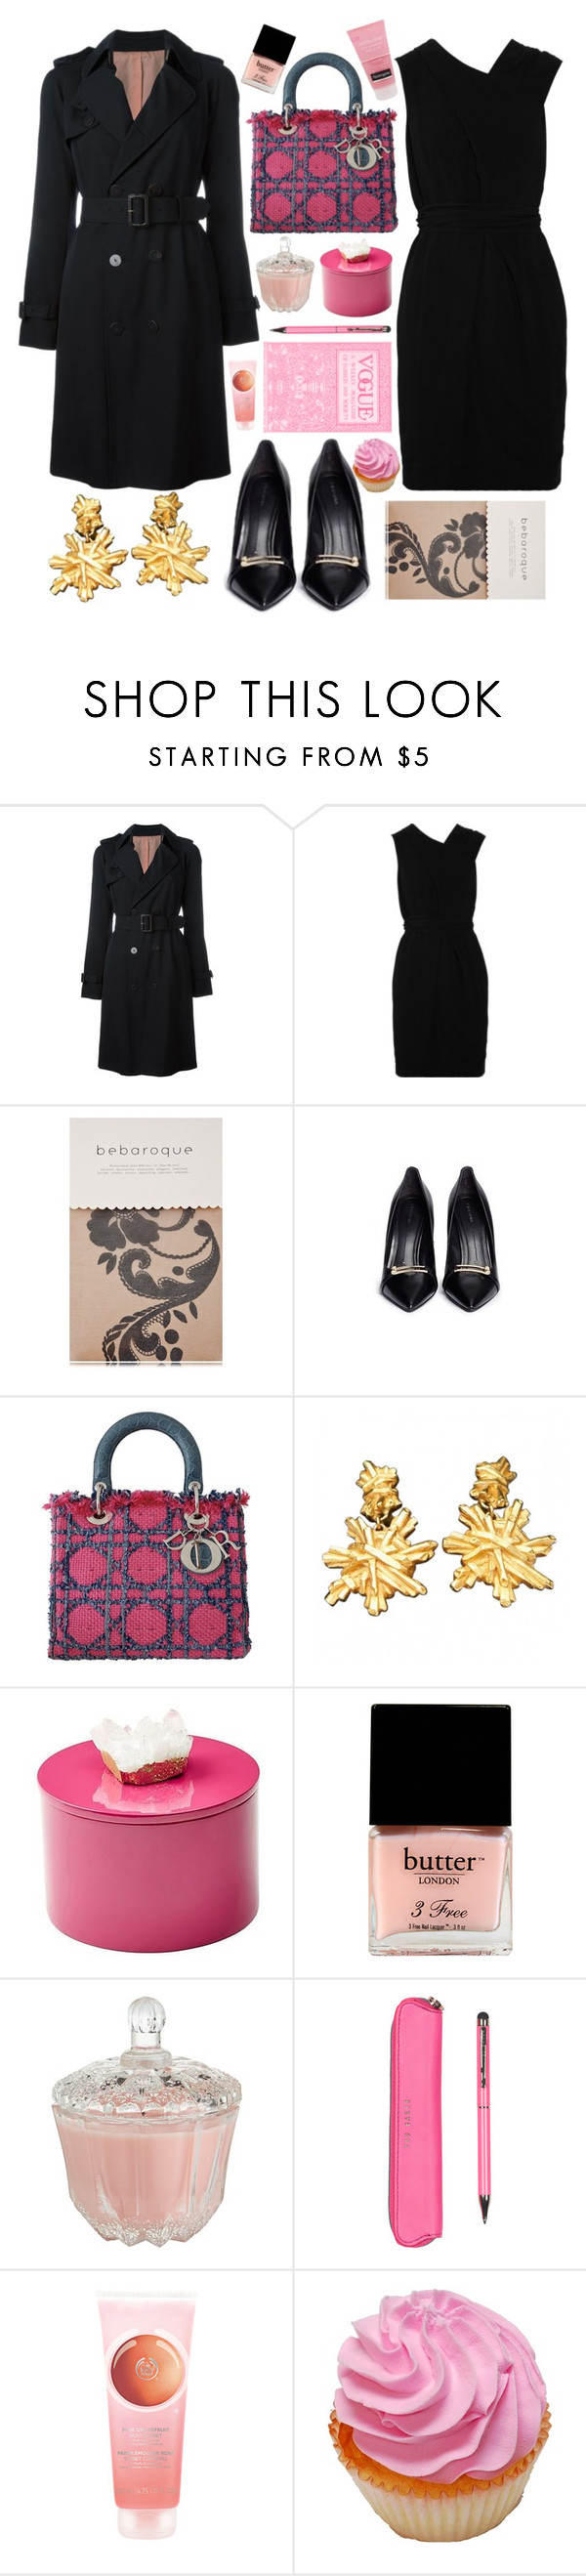 """Sin título #1241"" by meelstyle ❤ liked on Polyvore featuring Jean-Paul Gaultier, Yigal AzrouÃ«l, Bebaroque, Stella Luna, Christian Lacroix, Mapleton Drive, Butter London, Pier 1 Imports, Ted Baker and The Body Shop"